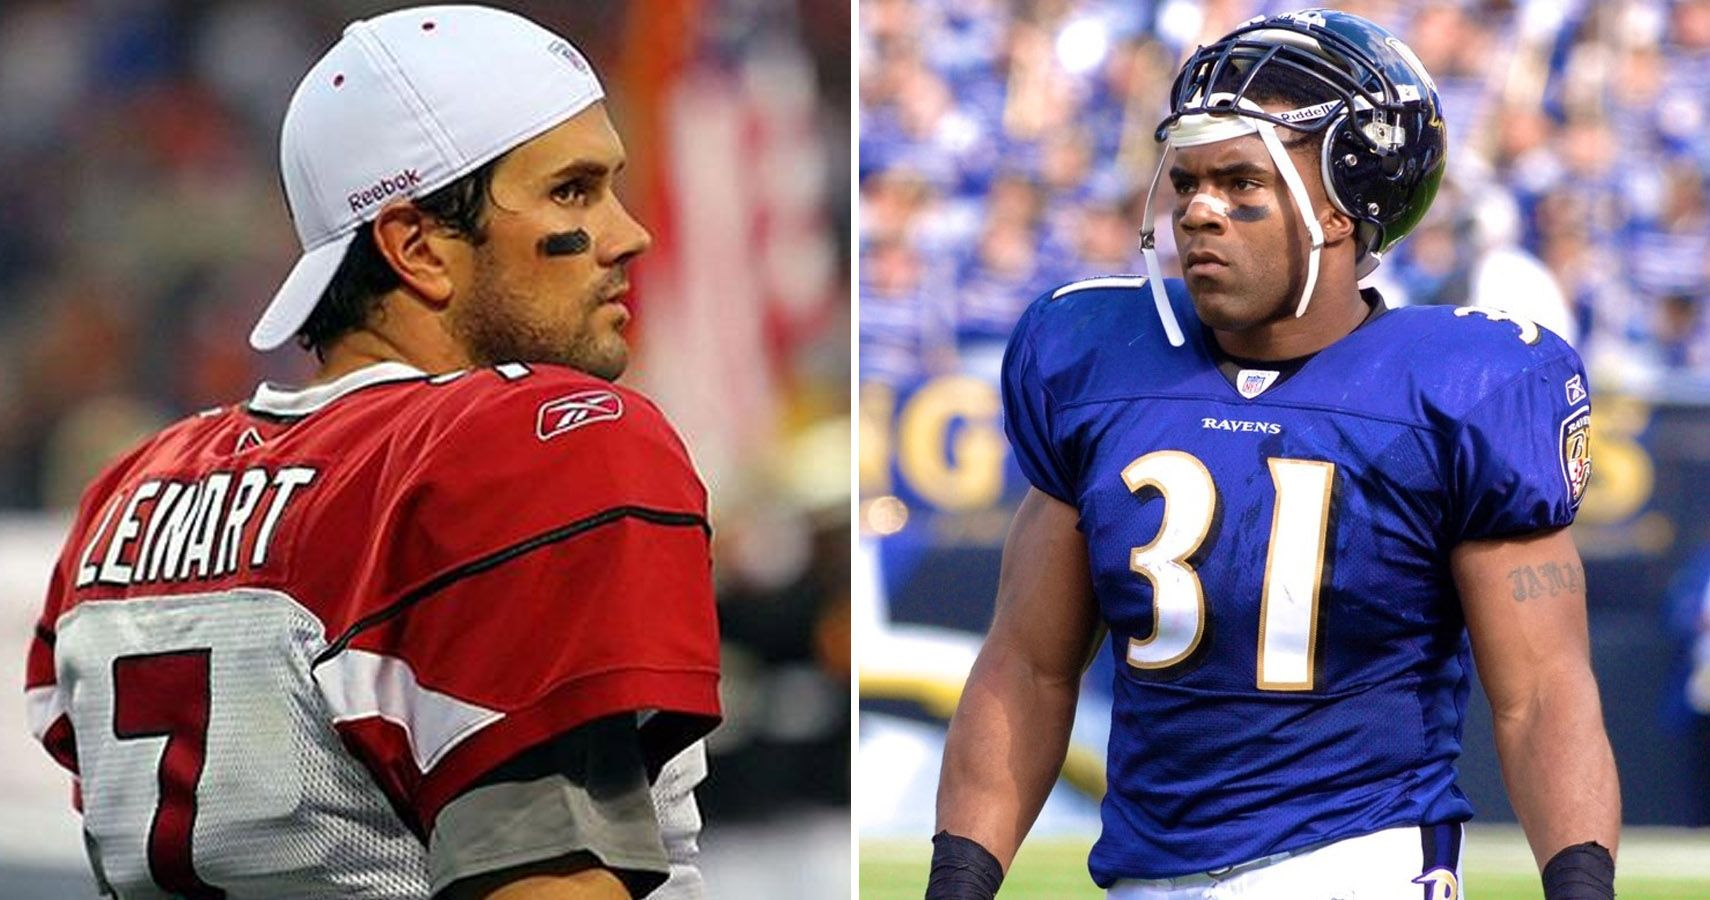 15 NFL Players Of The Y2K Era You Probably Don't Remember